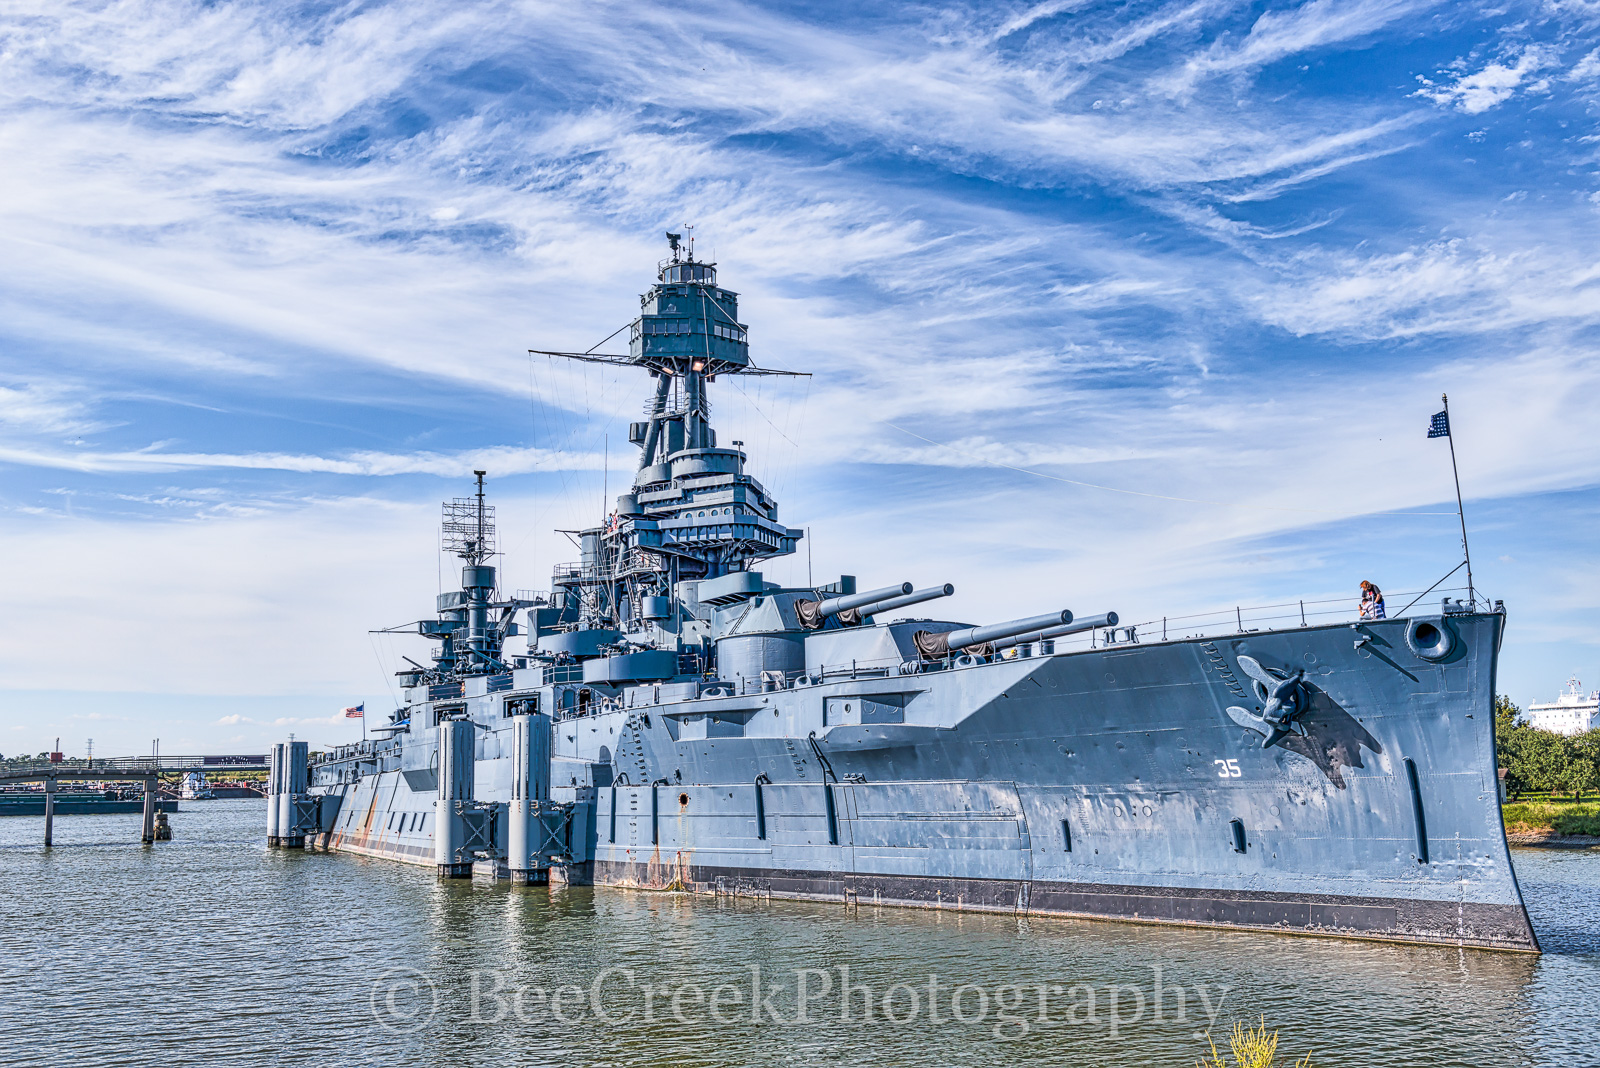 Battleship Texas, Houston, La Porte, Texas Park and Wildlife, WWW!!, WWW1, historic, landmark, memorial, museum, people, ship channel, photo